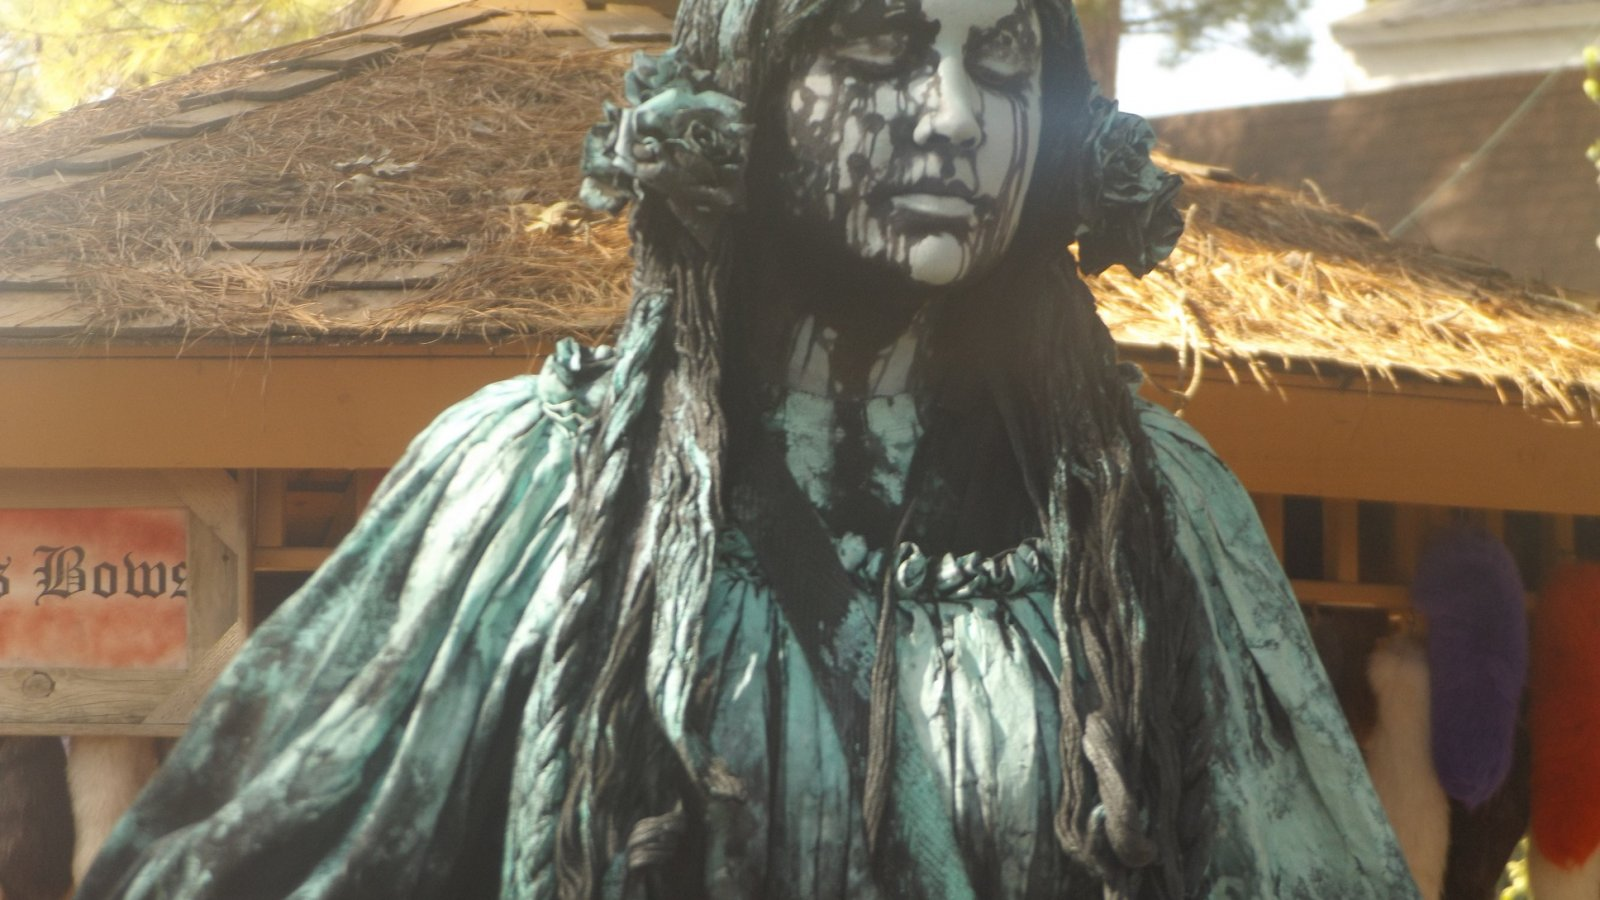 Weeping Angel spotted at Texas Renaissance Festival, school days. Where is The Doctor? - Peldar Stogsdill